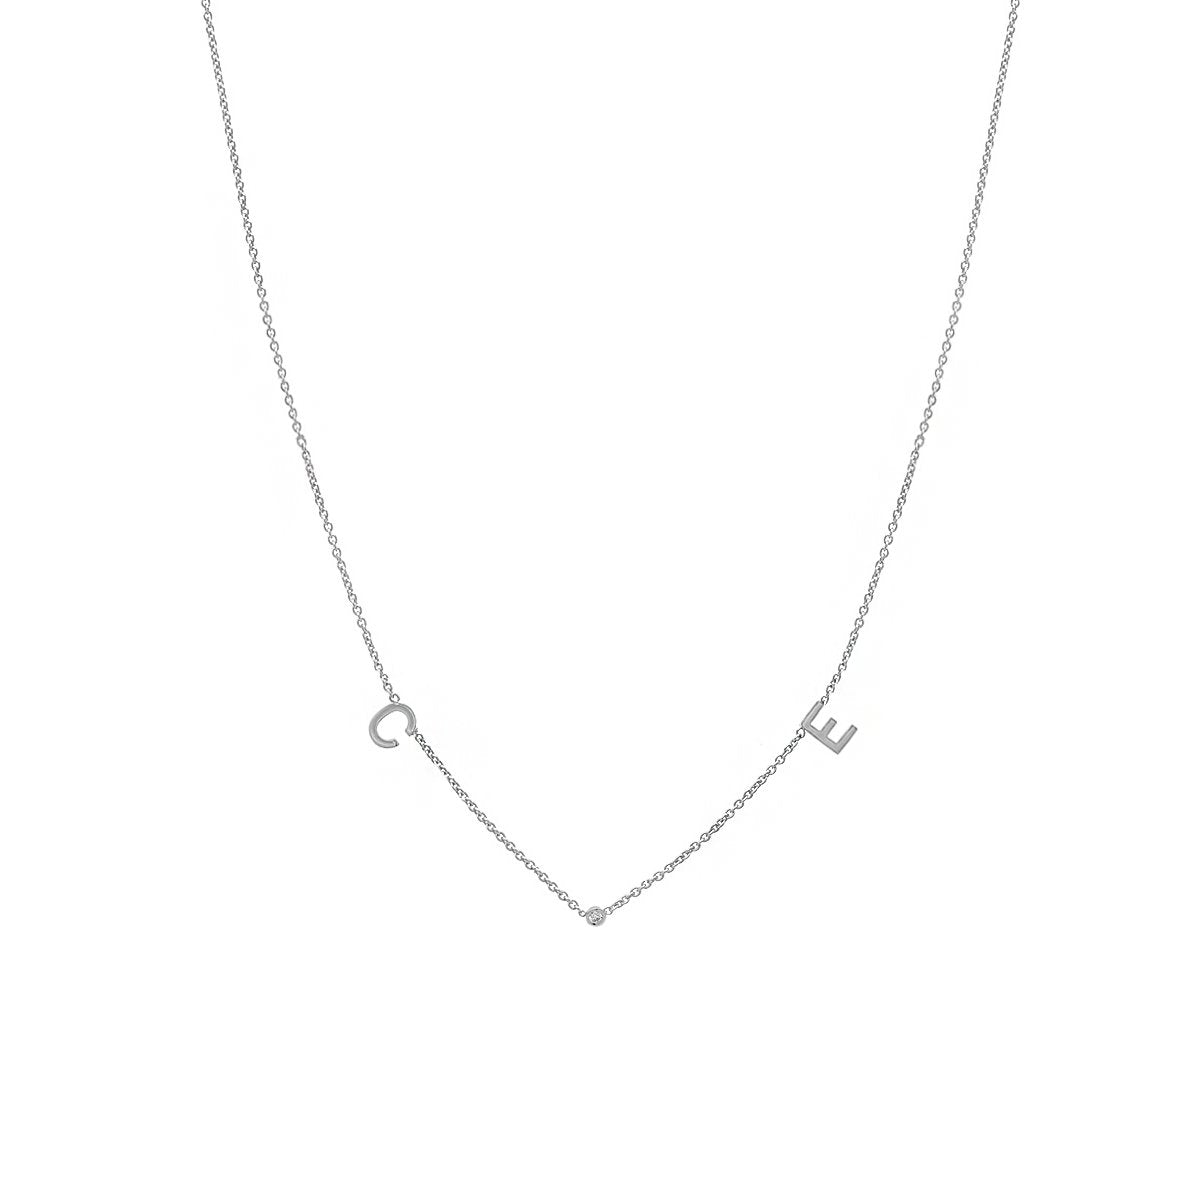 2 Initial and Diamond Necklace